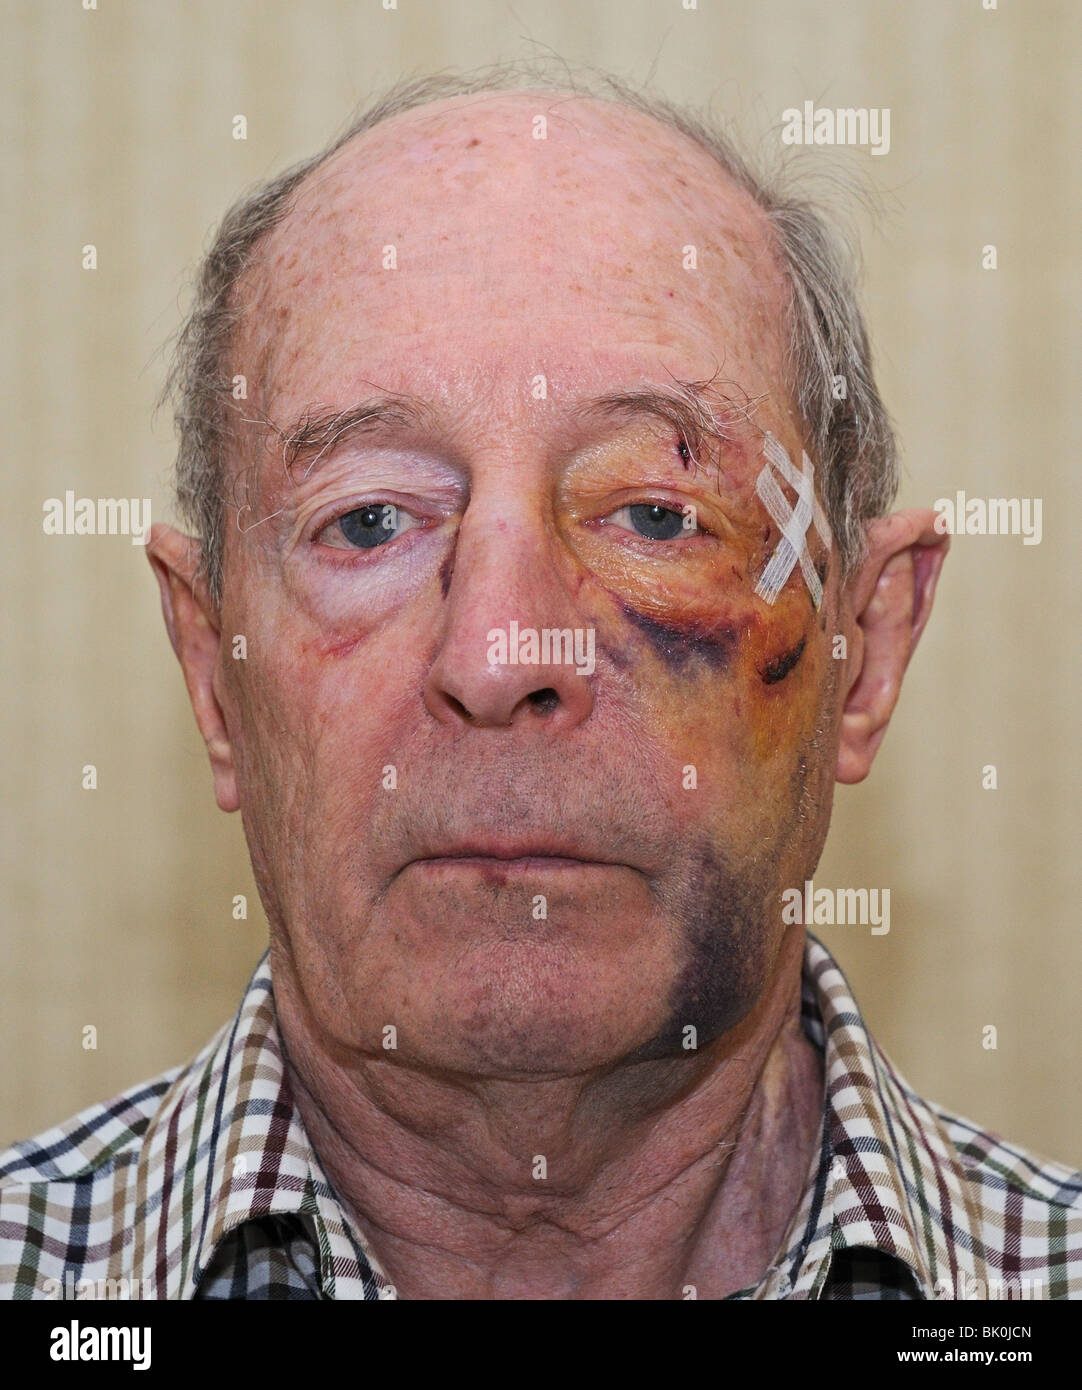 Facial wounds bruises and injuries on elderley 76 year old white man after being assaulted by teenagers in Oxfordshire - Stock Image